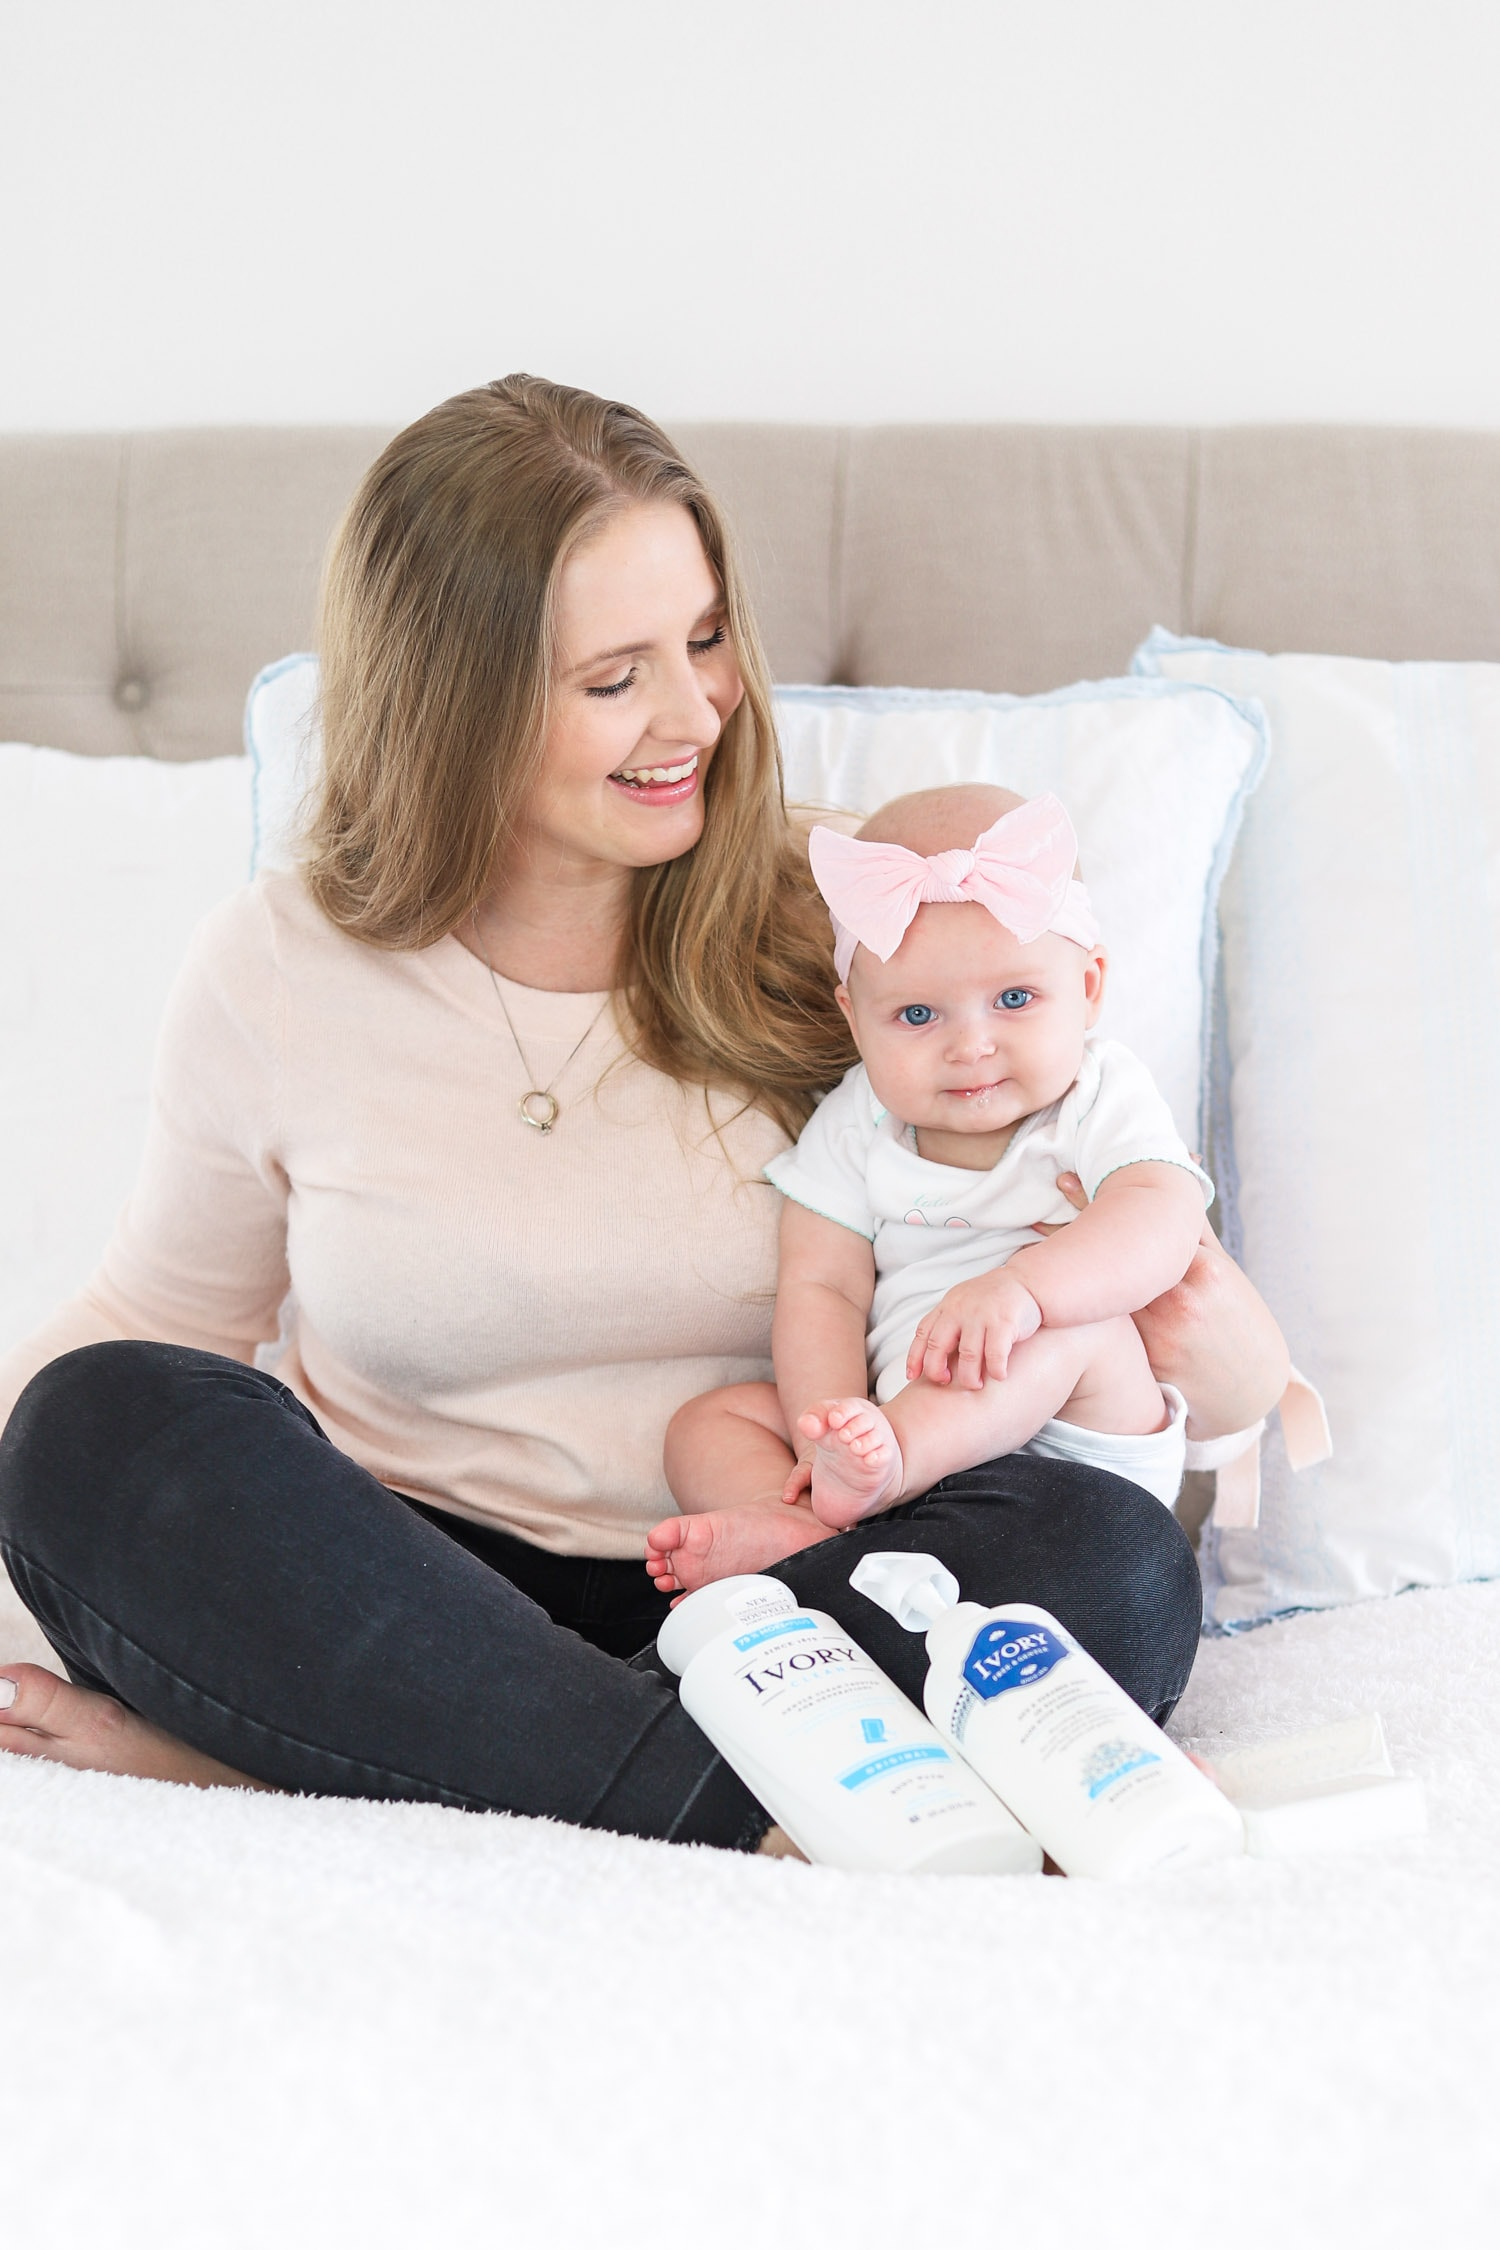 Happy mom and baby sitting on bed | Ivory lotion | grandmother's beauty secrets | Ashley Brooke Nicholas